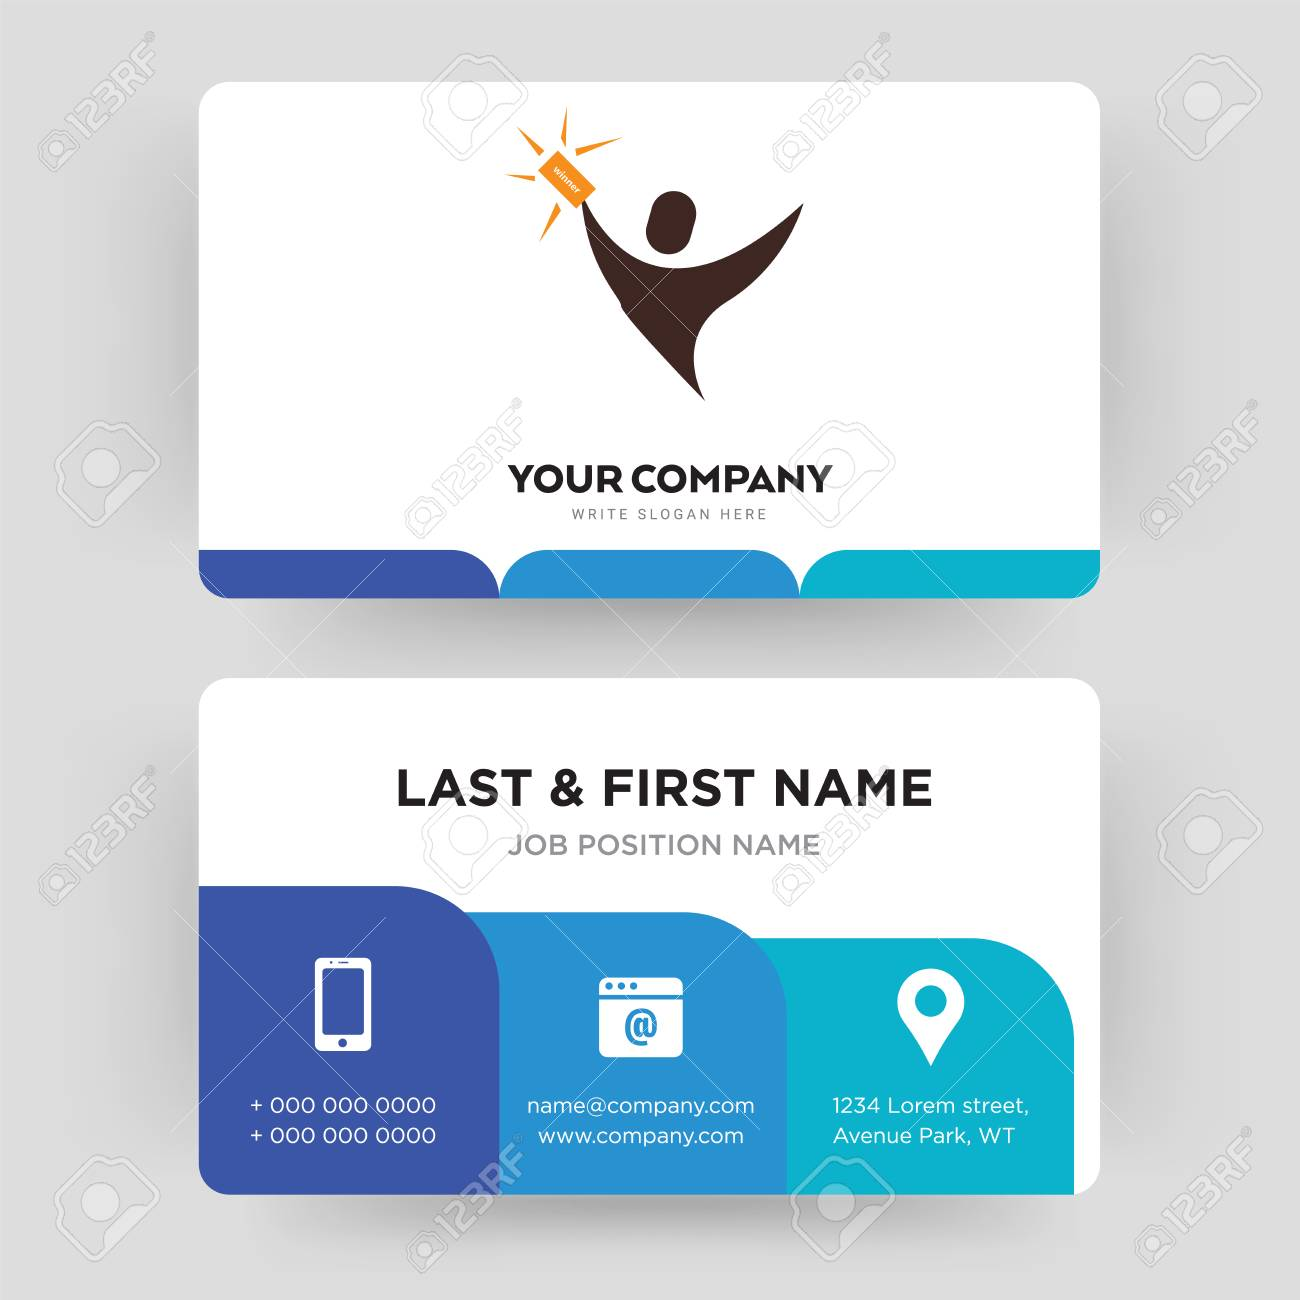 Lucky Draw Business Card Design Template Visiting For Your